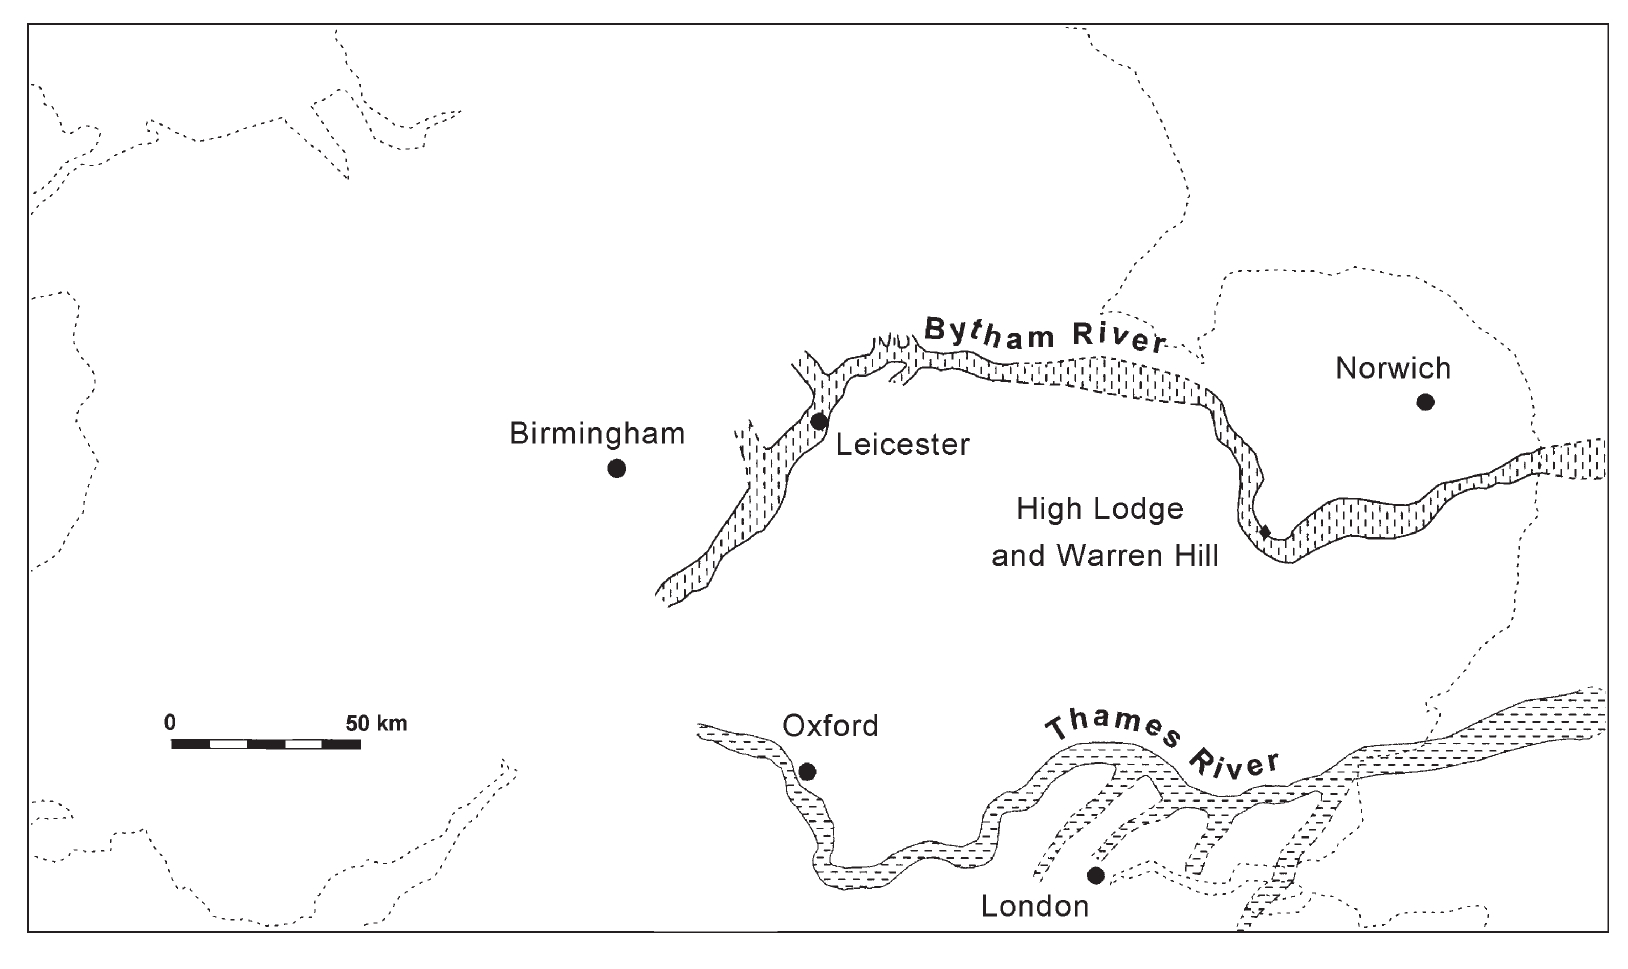 A map showing the south of England, with the routes of the Bytham and Thames rivers marked. The Bytham flows east from near Birmingham, passing south of Norwich. The Thames flows east from near Oxford, passing north of London.